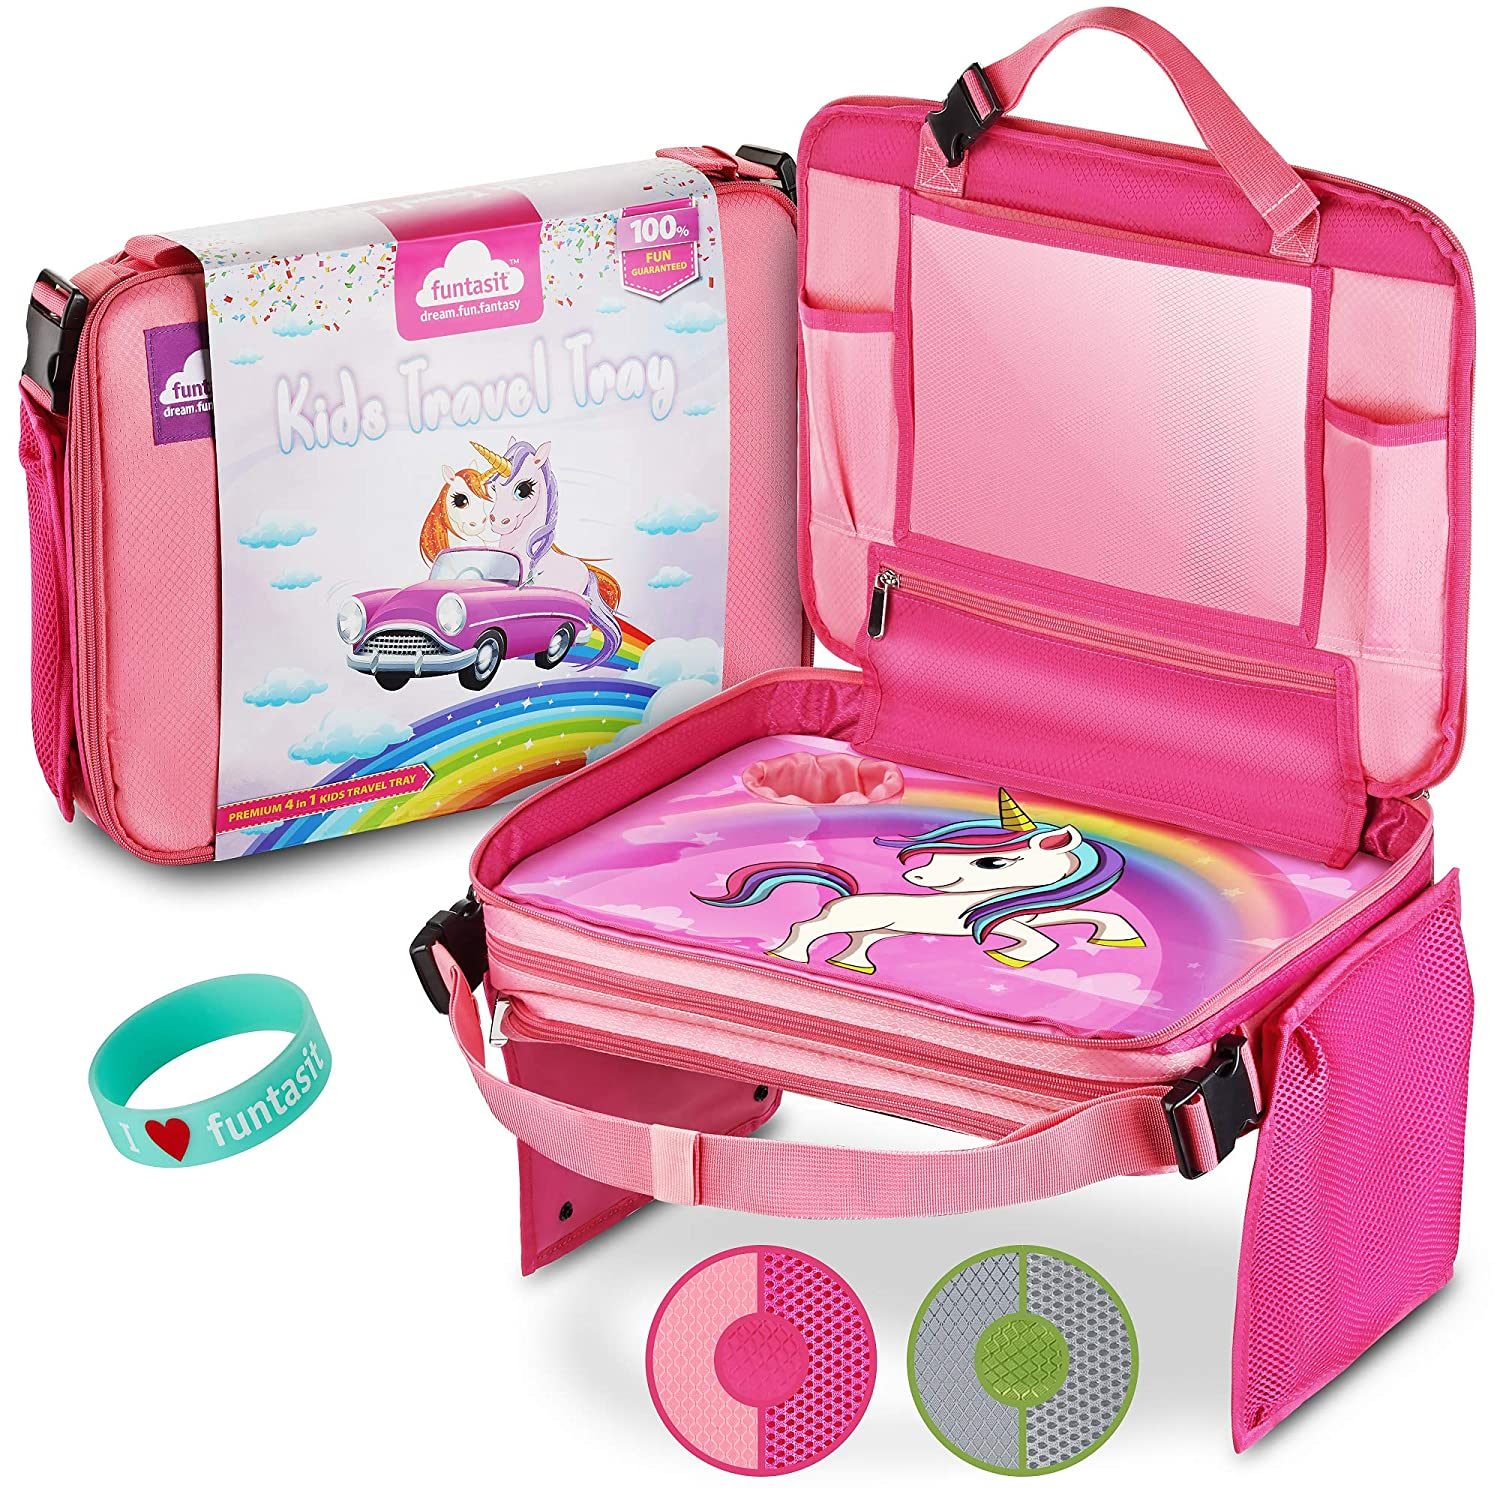 Funtasit Kids Travel Tray All-in-One Carry Bag, Play Table, Storage and Tablet Holder with Detachable Back - Side Pockets - Sturdy, Leakproof, Easy Clean. Pink